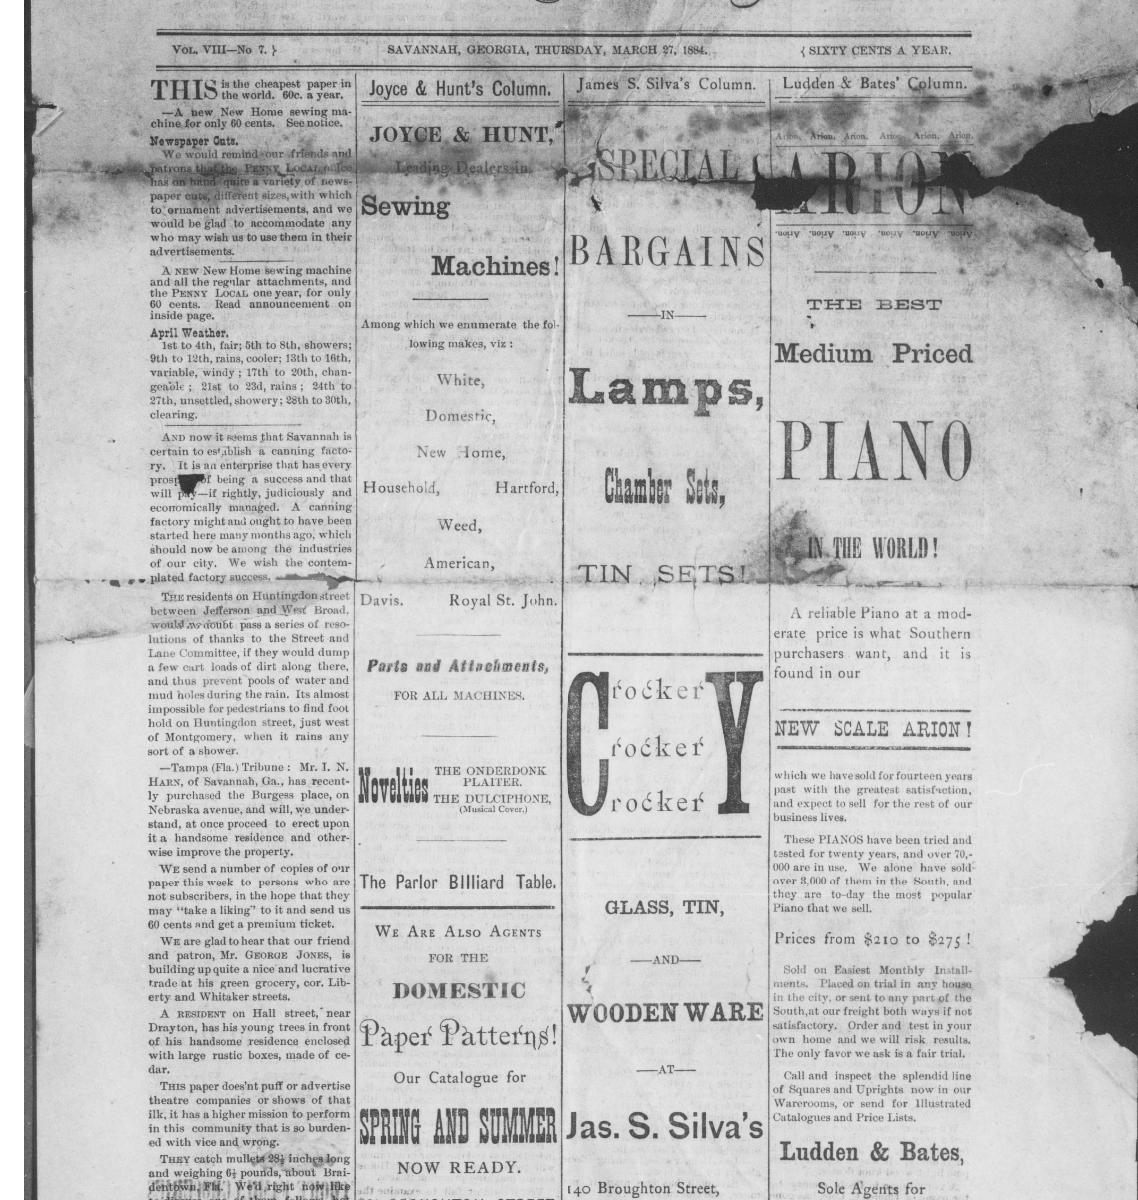 front cover of the newspaper The Penny Local (Savannah, Ga.), March 27, 1884, Page 1